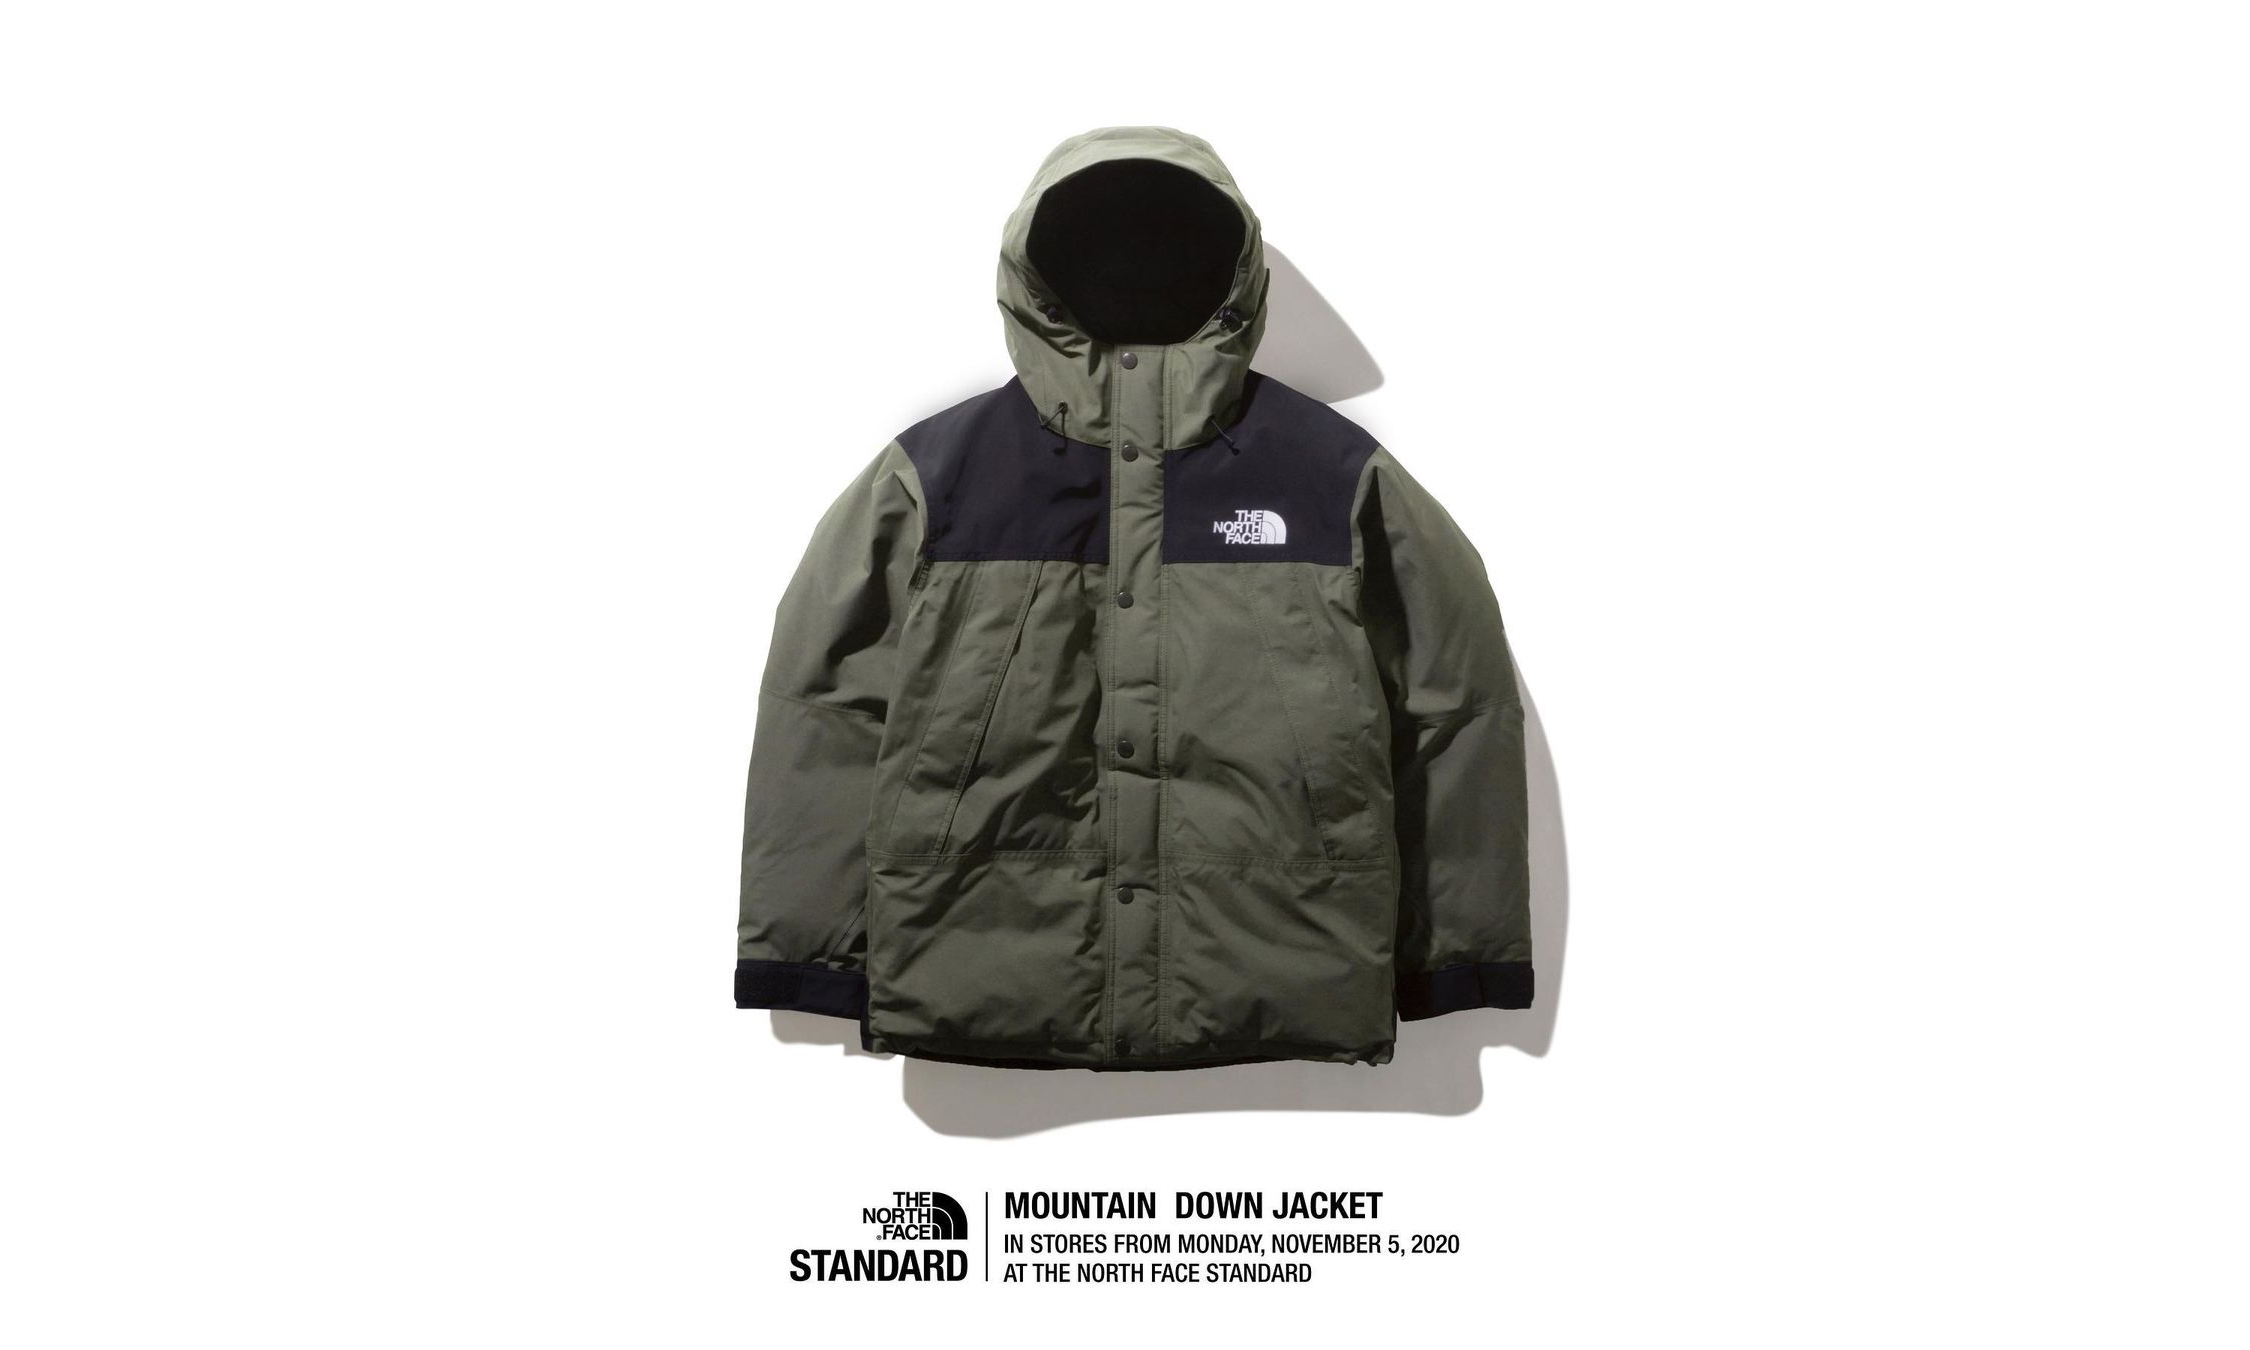 THE NORTH FACE Mountain Down Jacket 再次开售